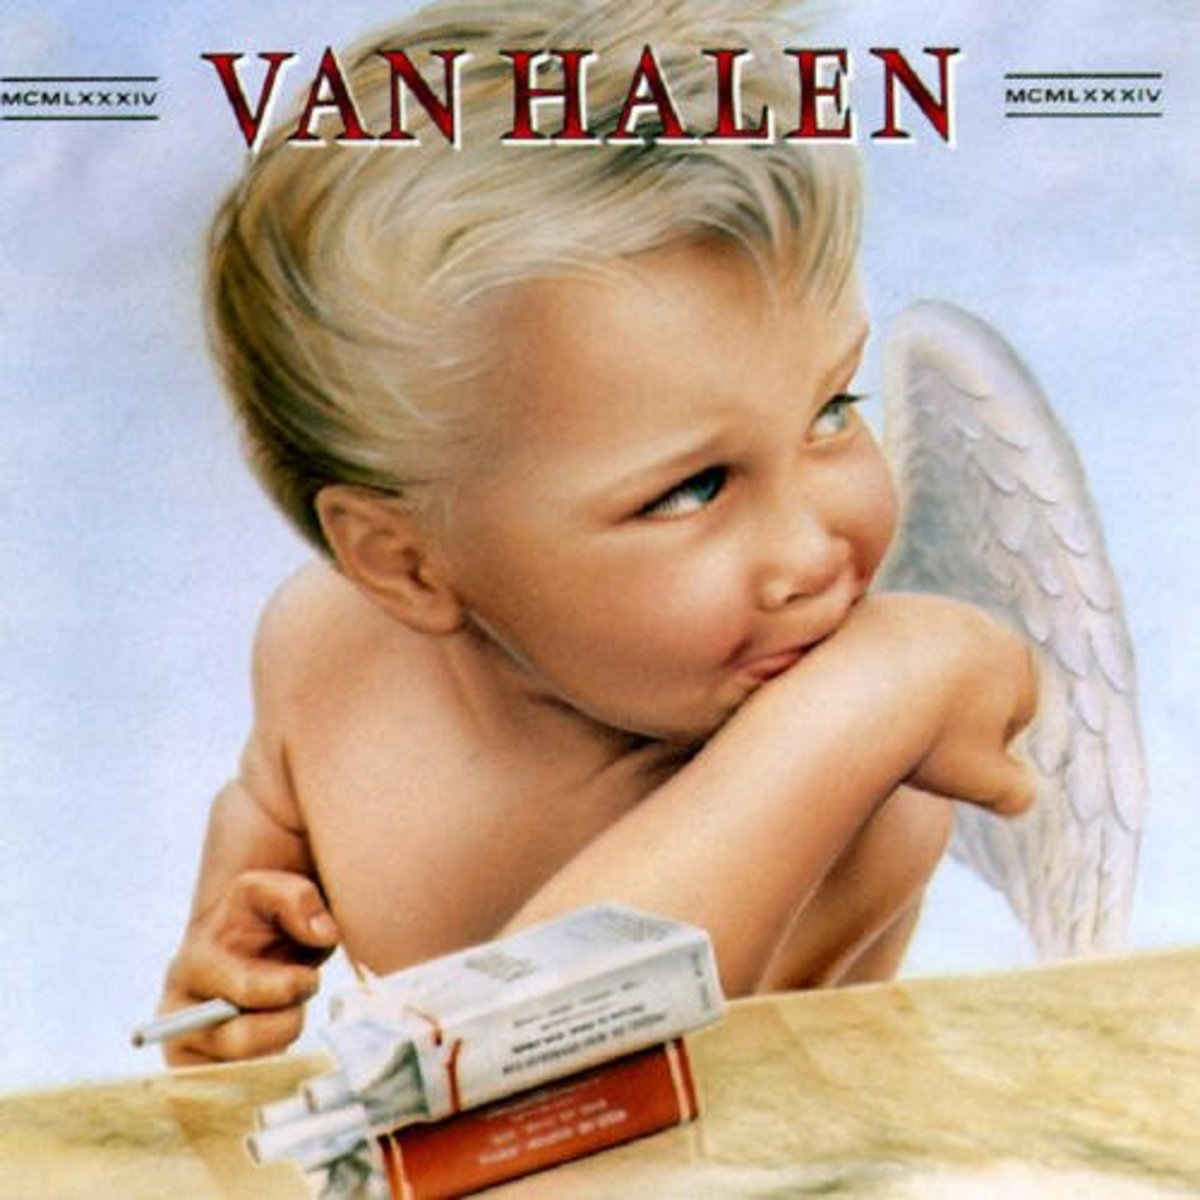 25 More Great Classic Rock, Hard Rock and Heavy Metal Album Covers